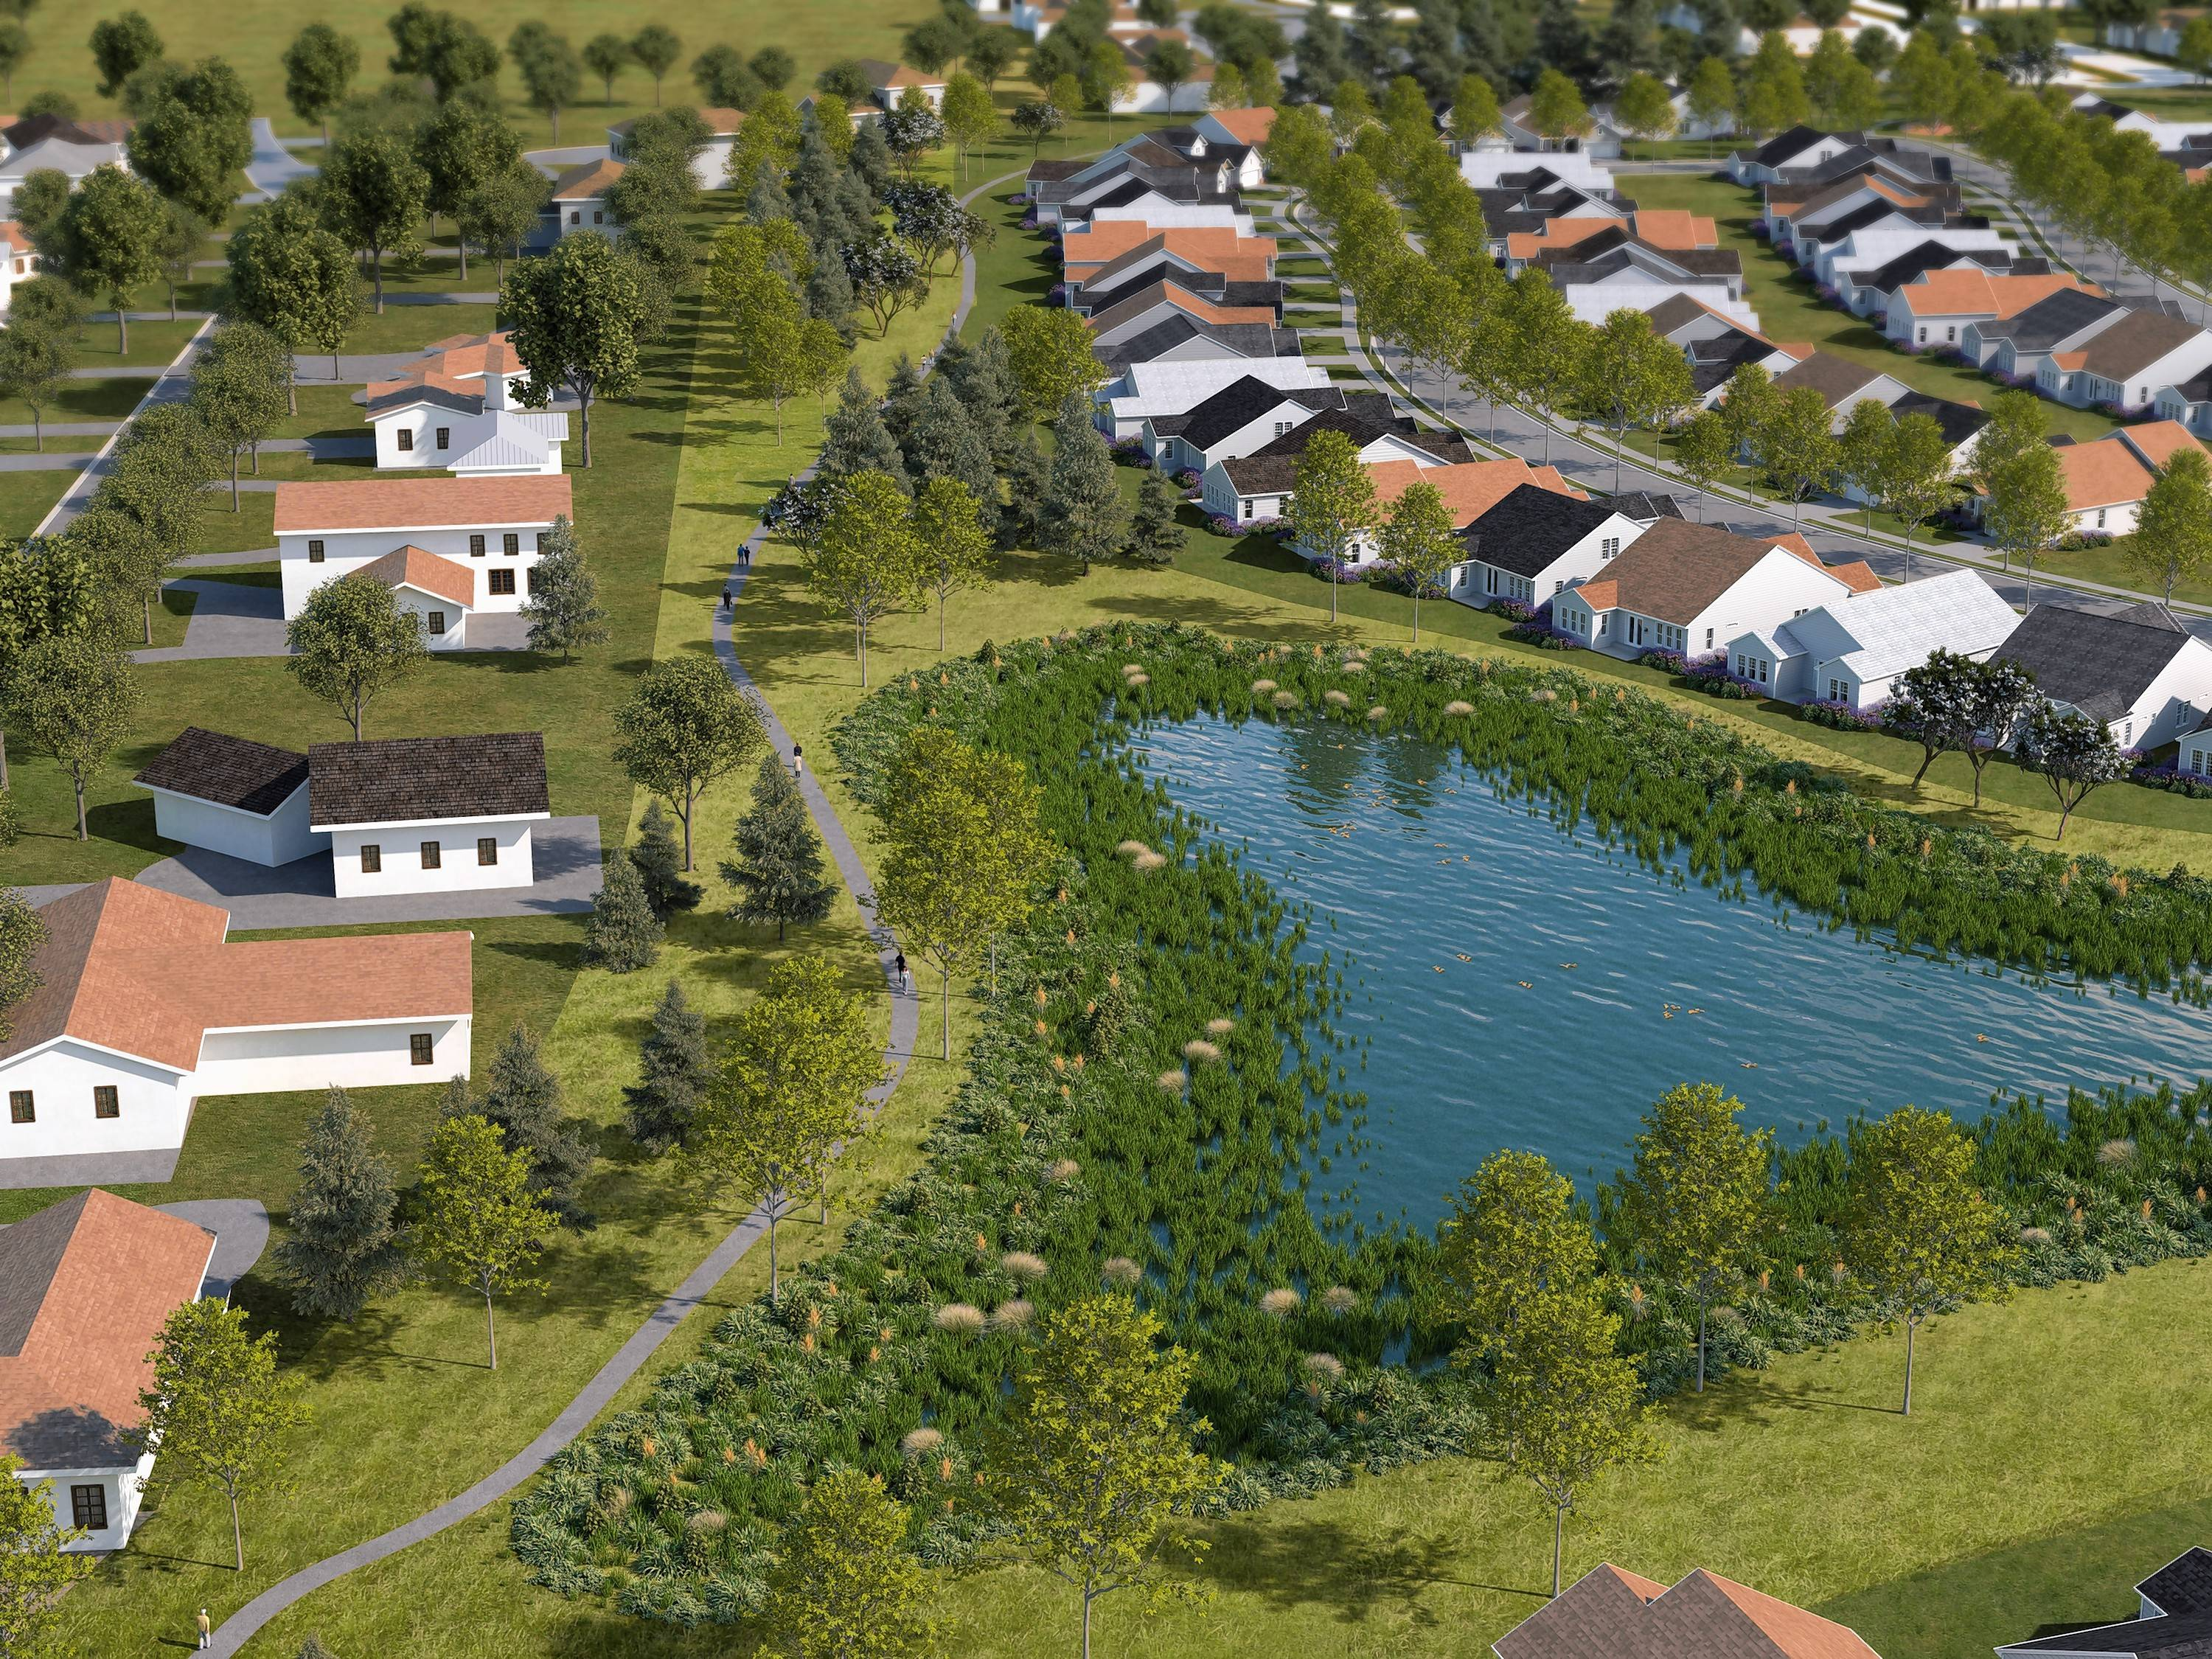 Indian Lakes Resort getting new hotel; hundreds of houses planned